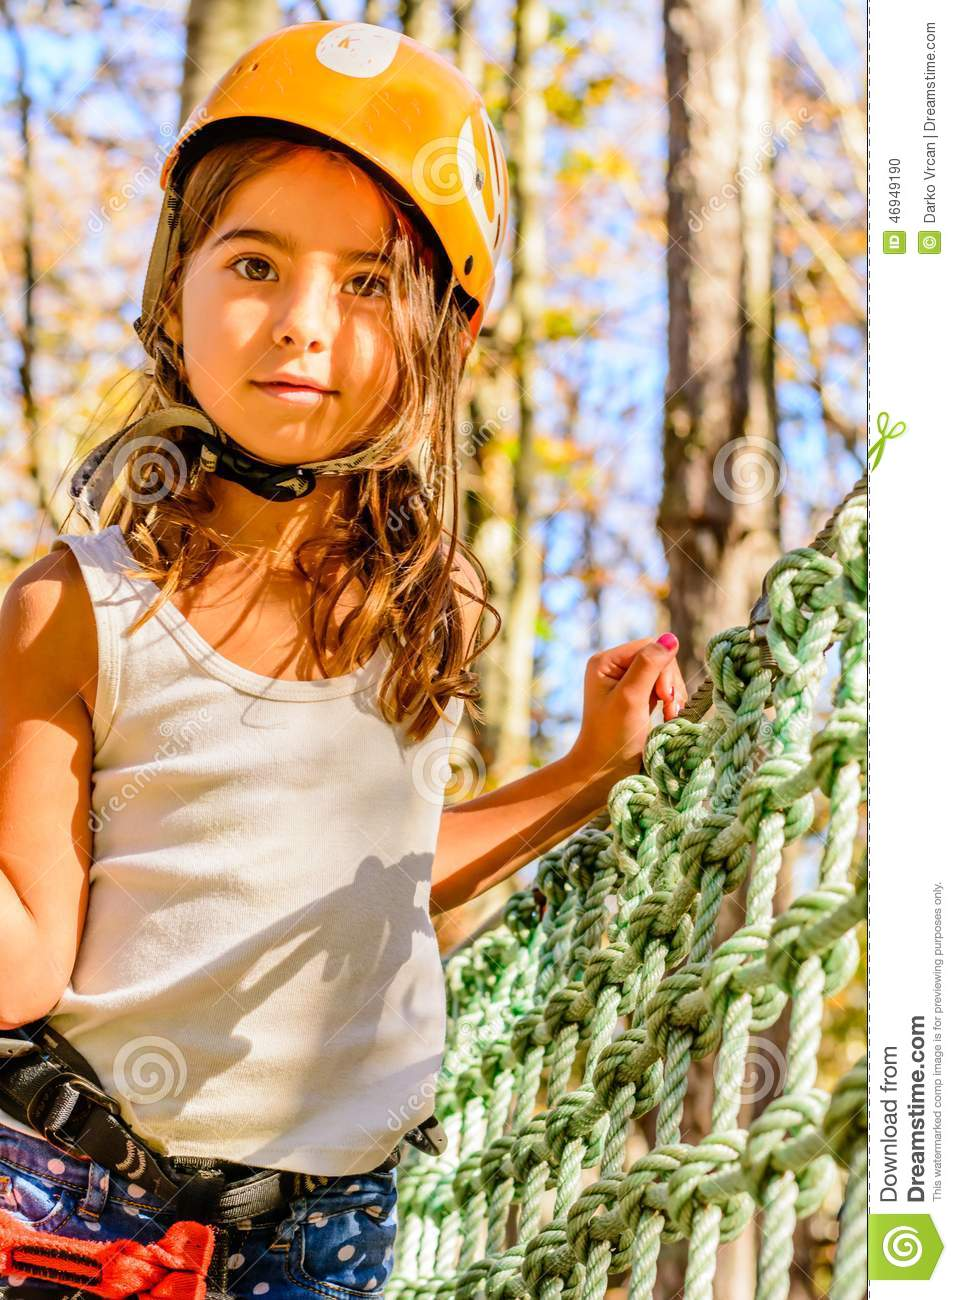 Cute Little Girl In Adventure Park Stock Photo - Image of carefree, scenes: 46949190